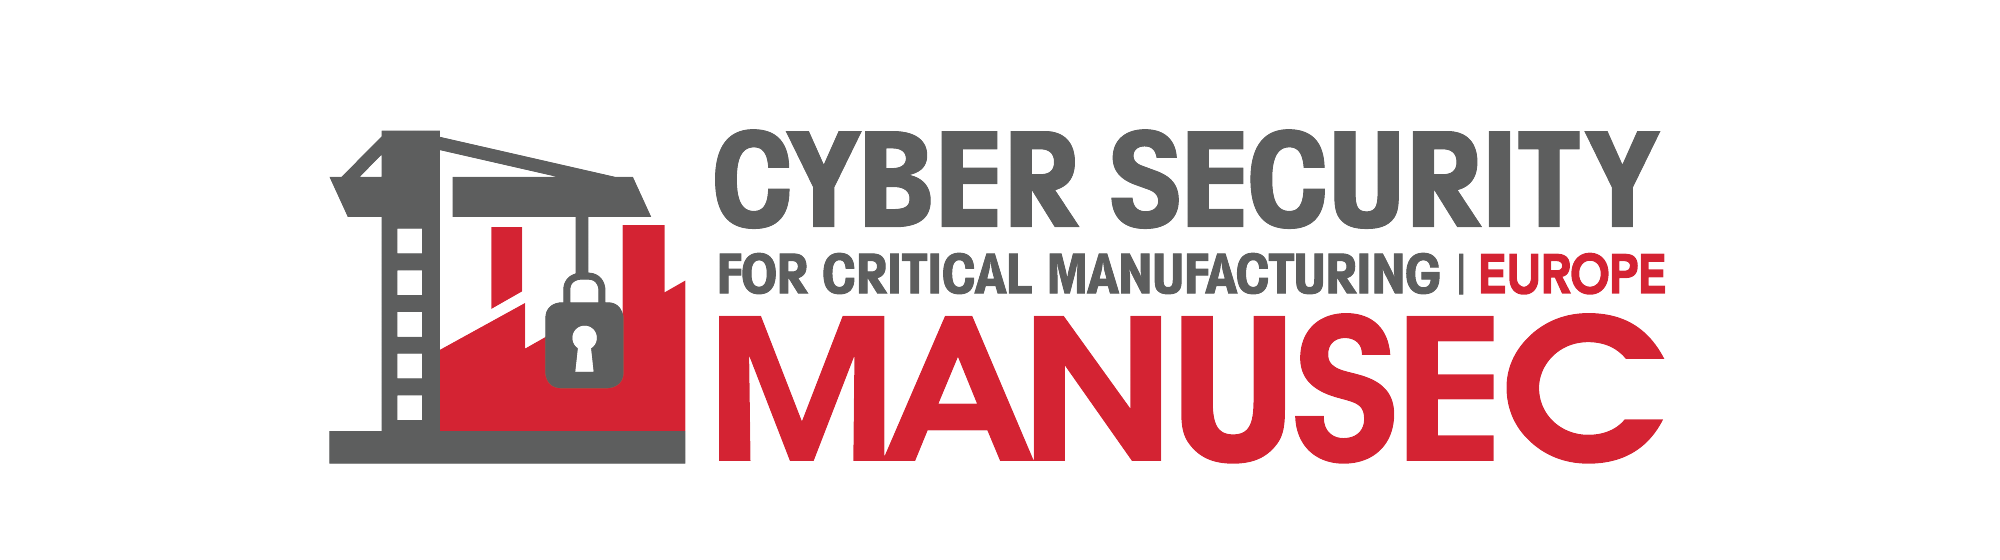 Cyber Security for Critical Manufacturing Europe I ManuSec